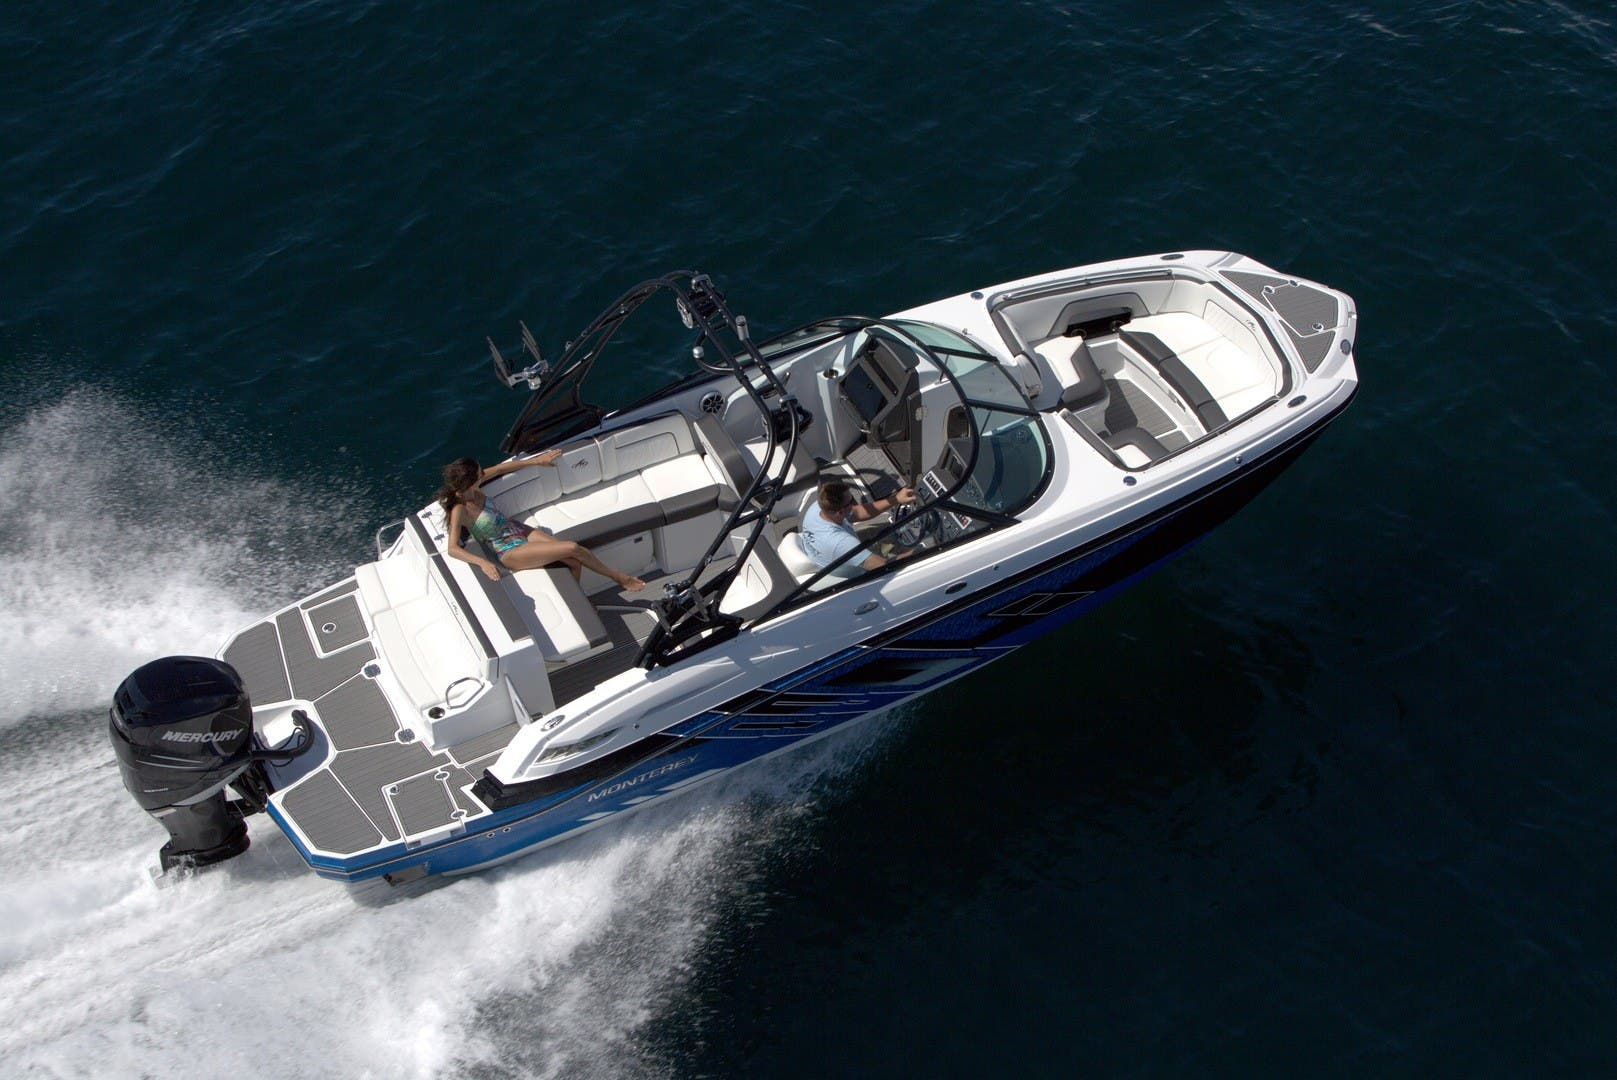 2021 Monterey boat for sale, model of the boat is M-65 & Image # 11 of 23